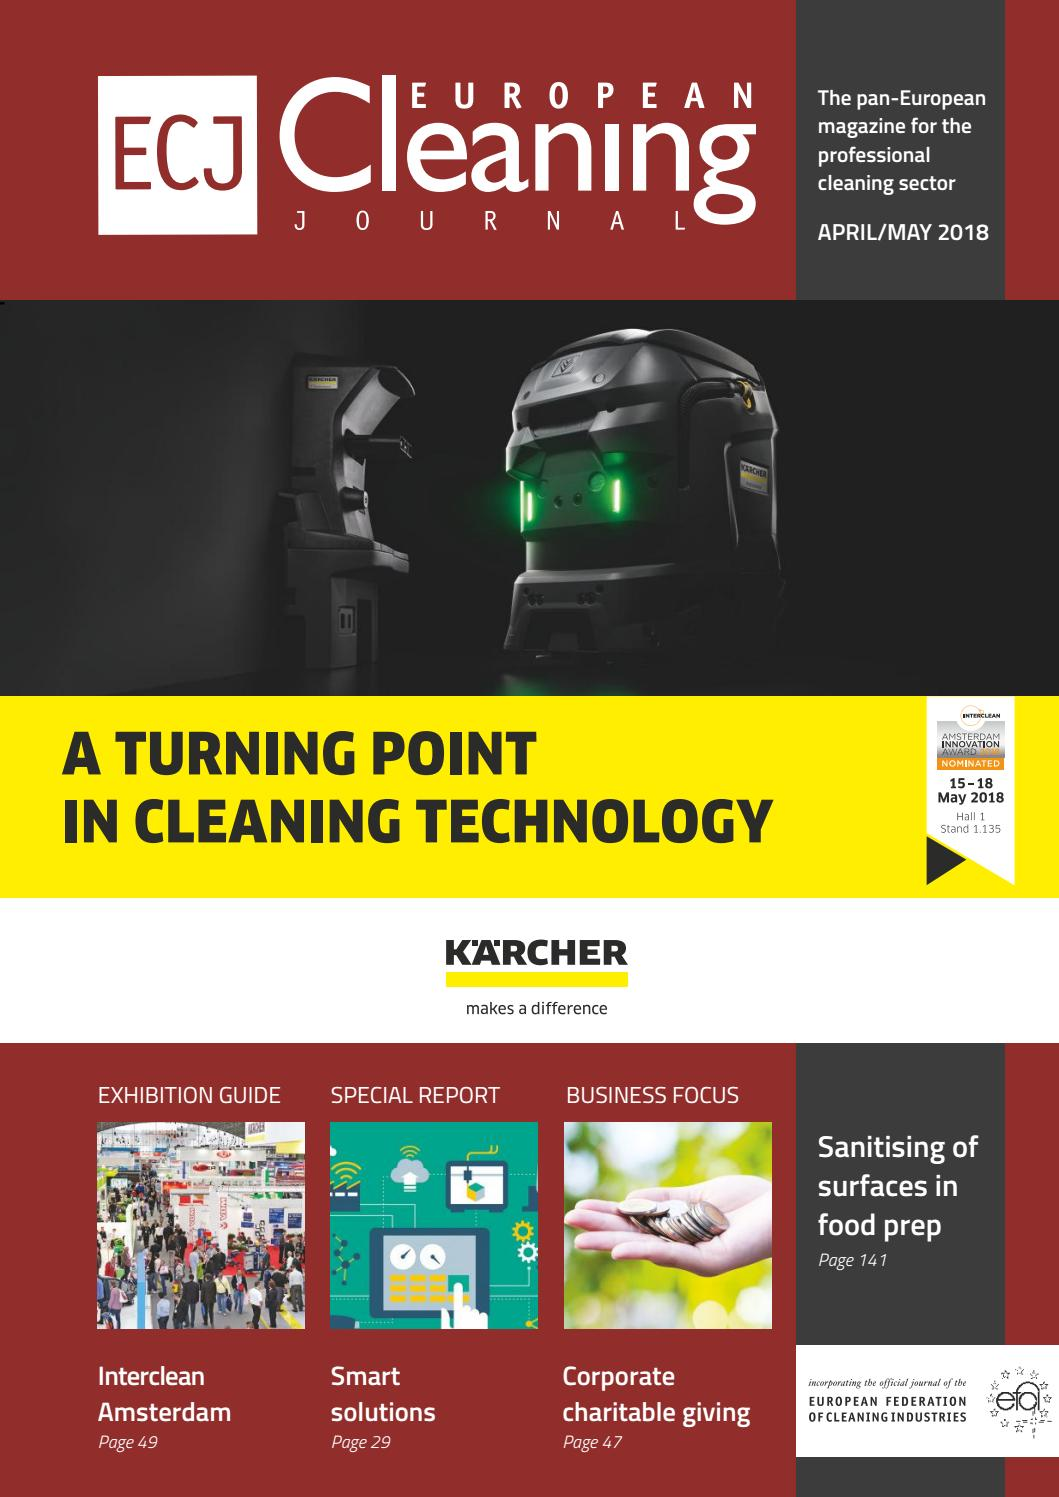 Le Bon Coin Tifon april/may 2018european cleaning journal - issuu